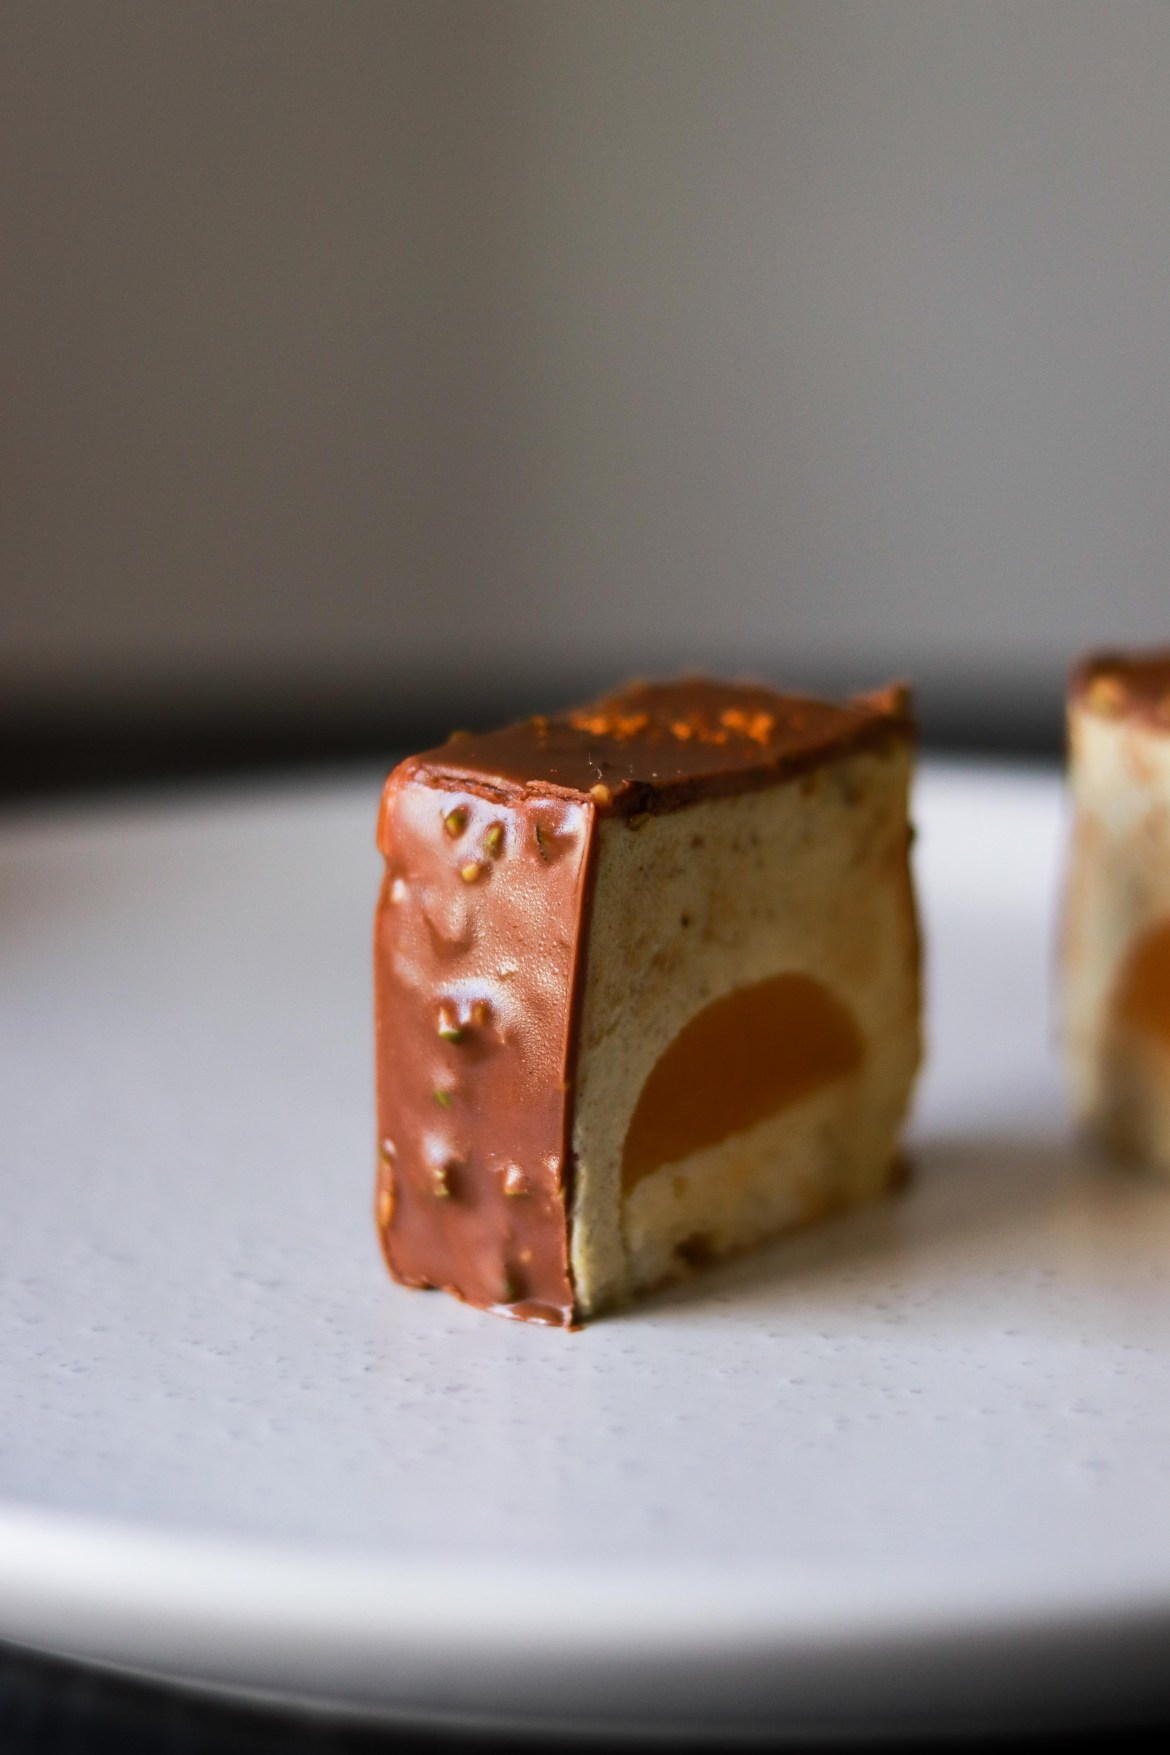 Pistachio Petit Gateaux with Passionfruit Jelly and Milk Chocolate Coating5